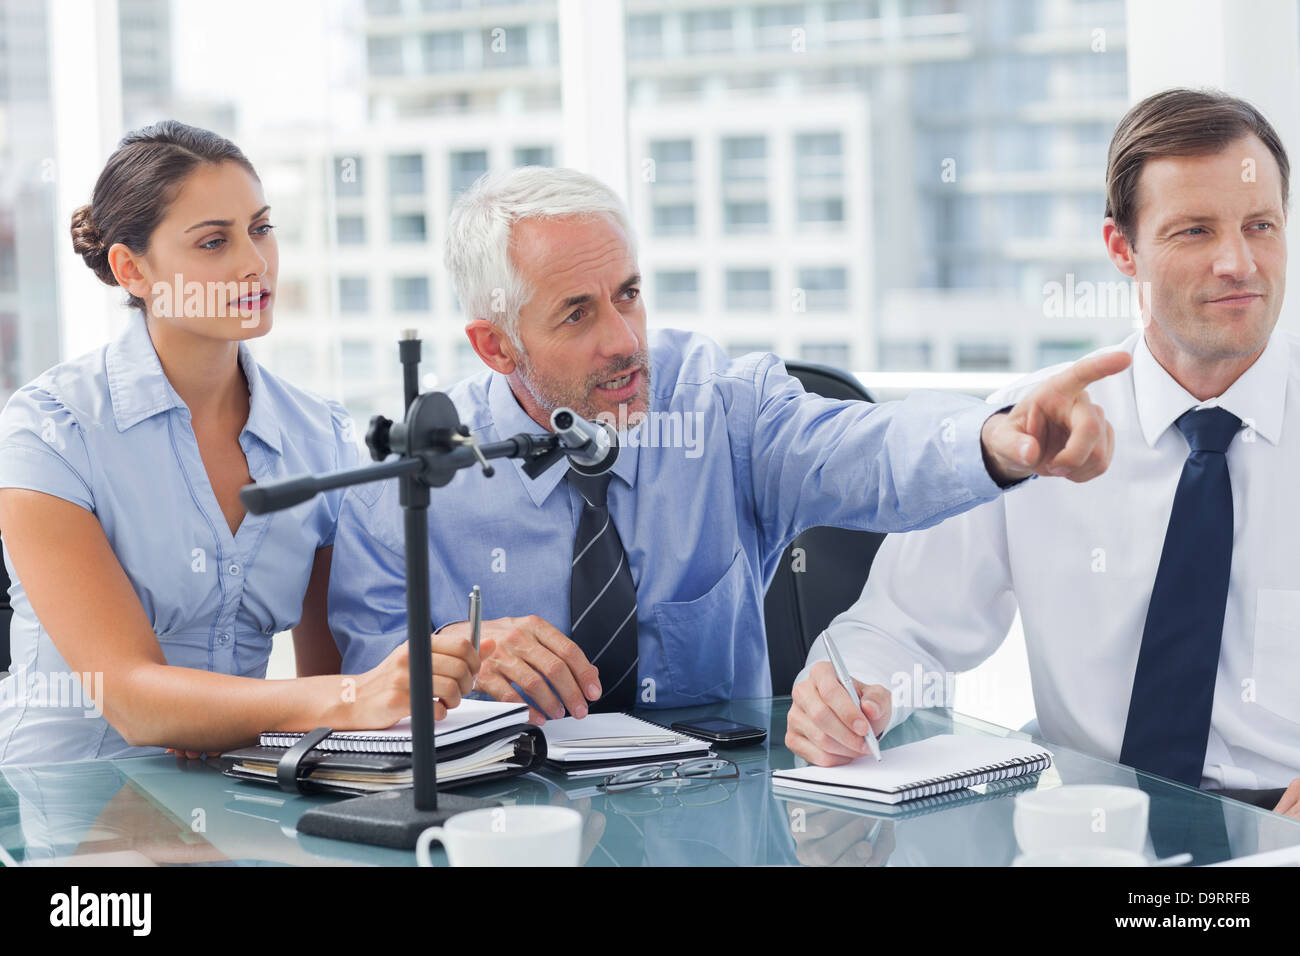 Business man pointing at something in a conference - Stock Image